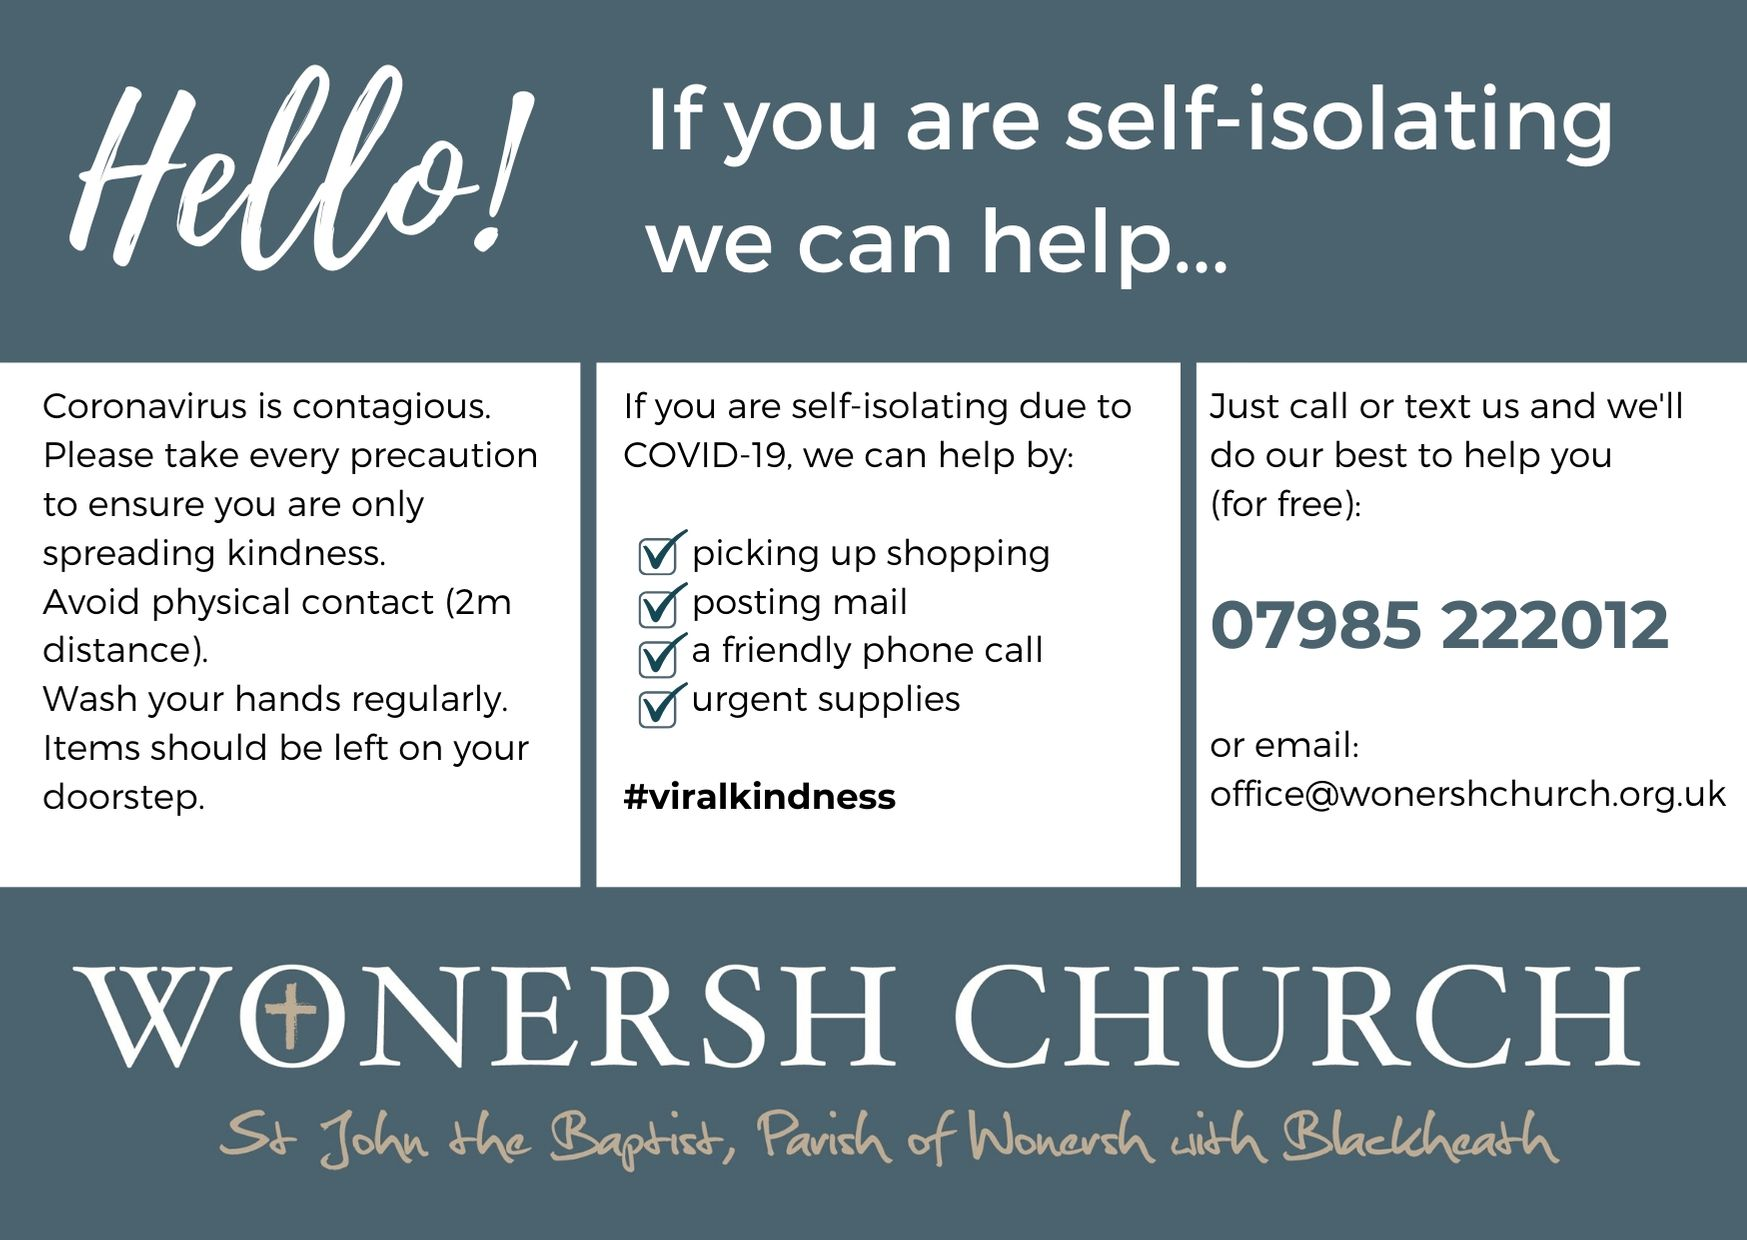 Self-isolating help card